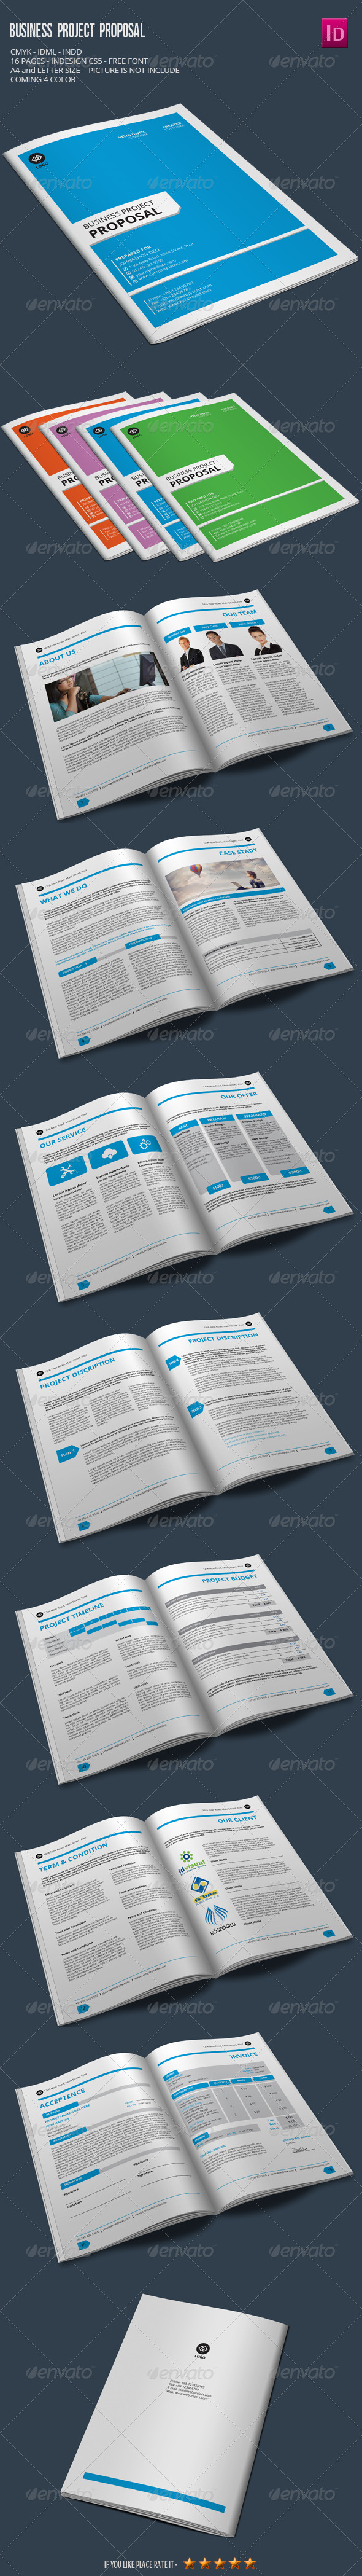 Business Project Proposal - Proposals & Invoices Stationery